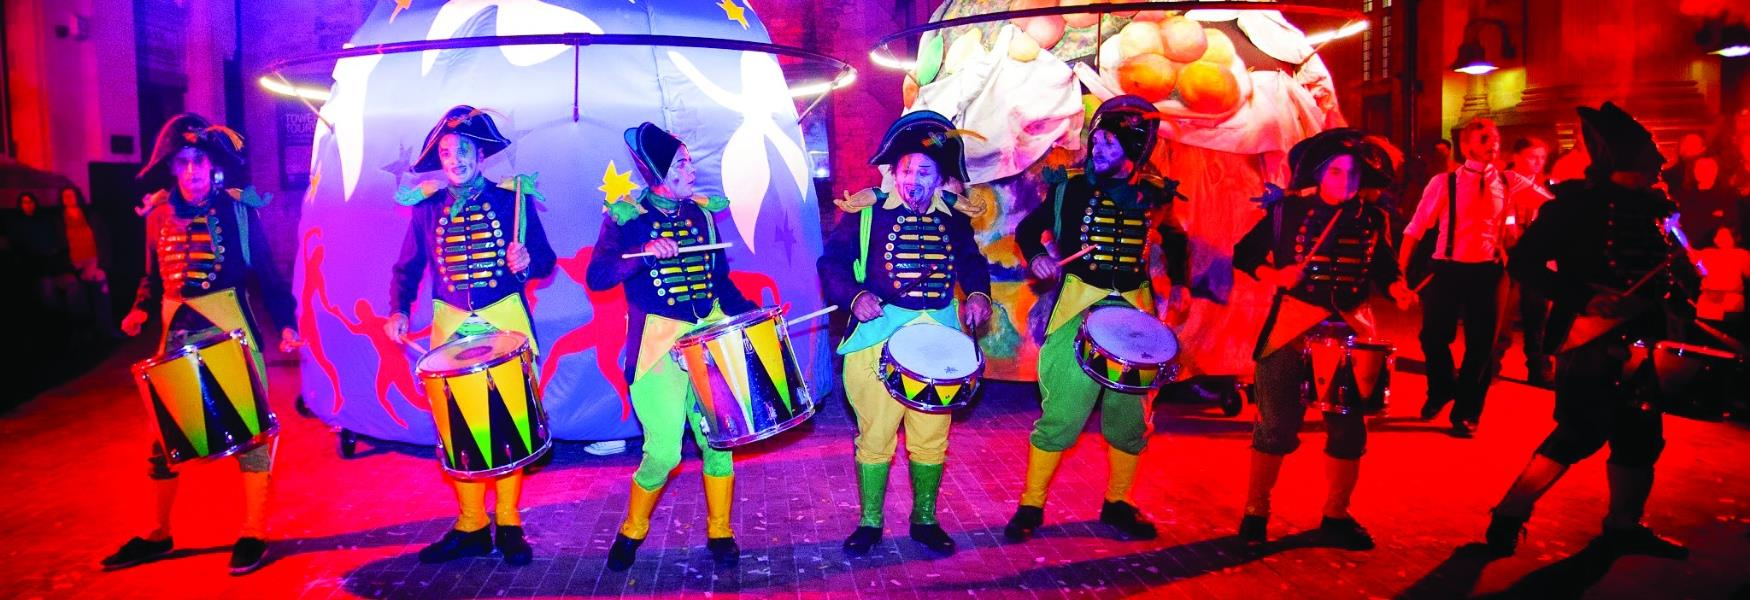 Image of a group of drummers dressed in costumes.